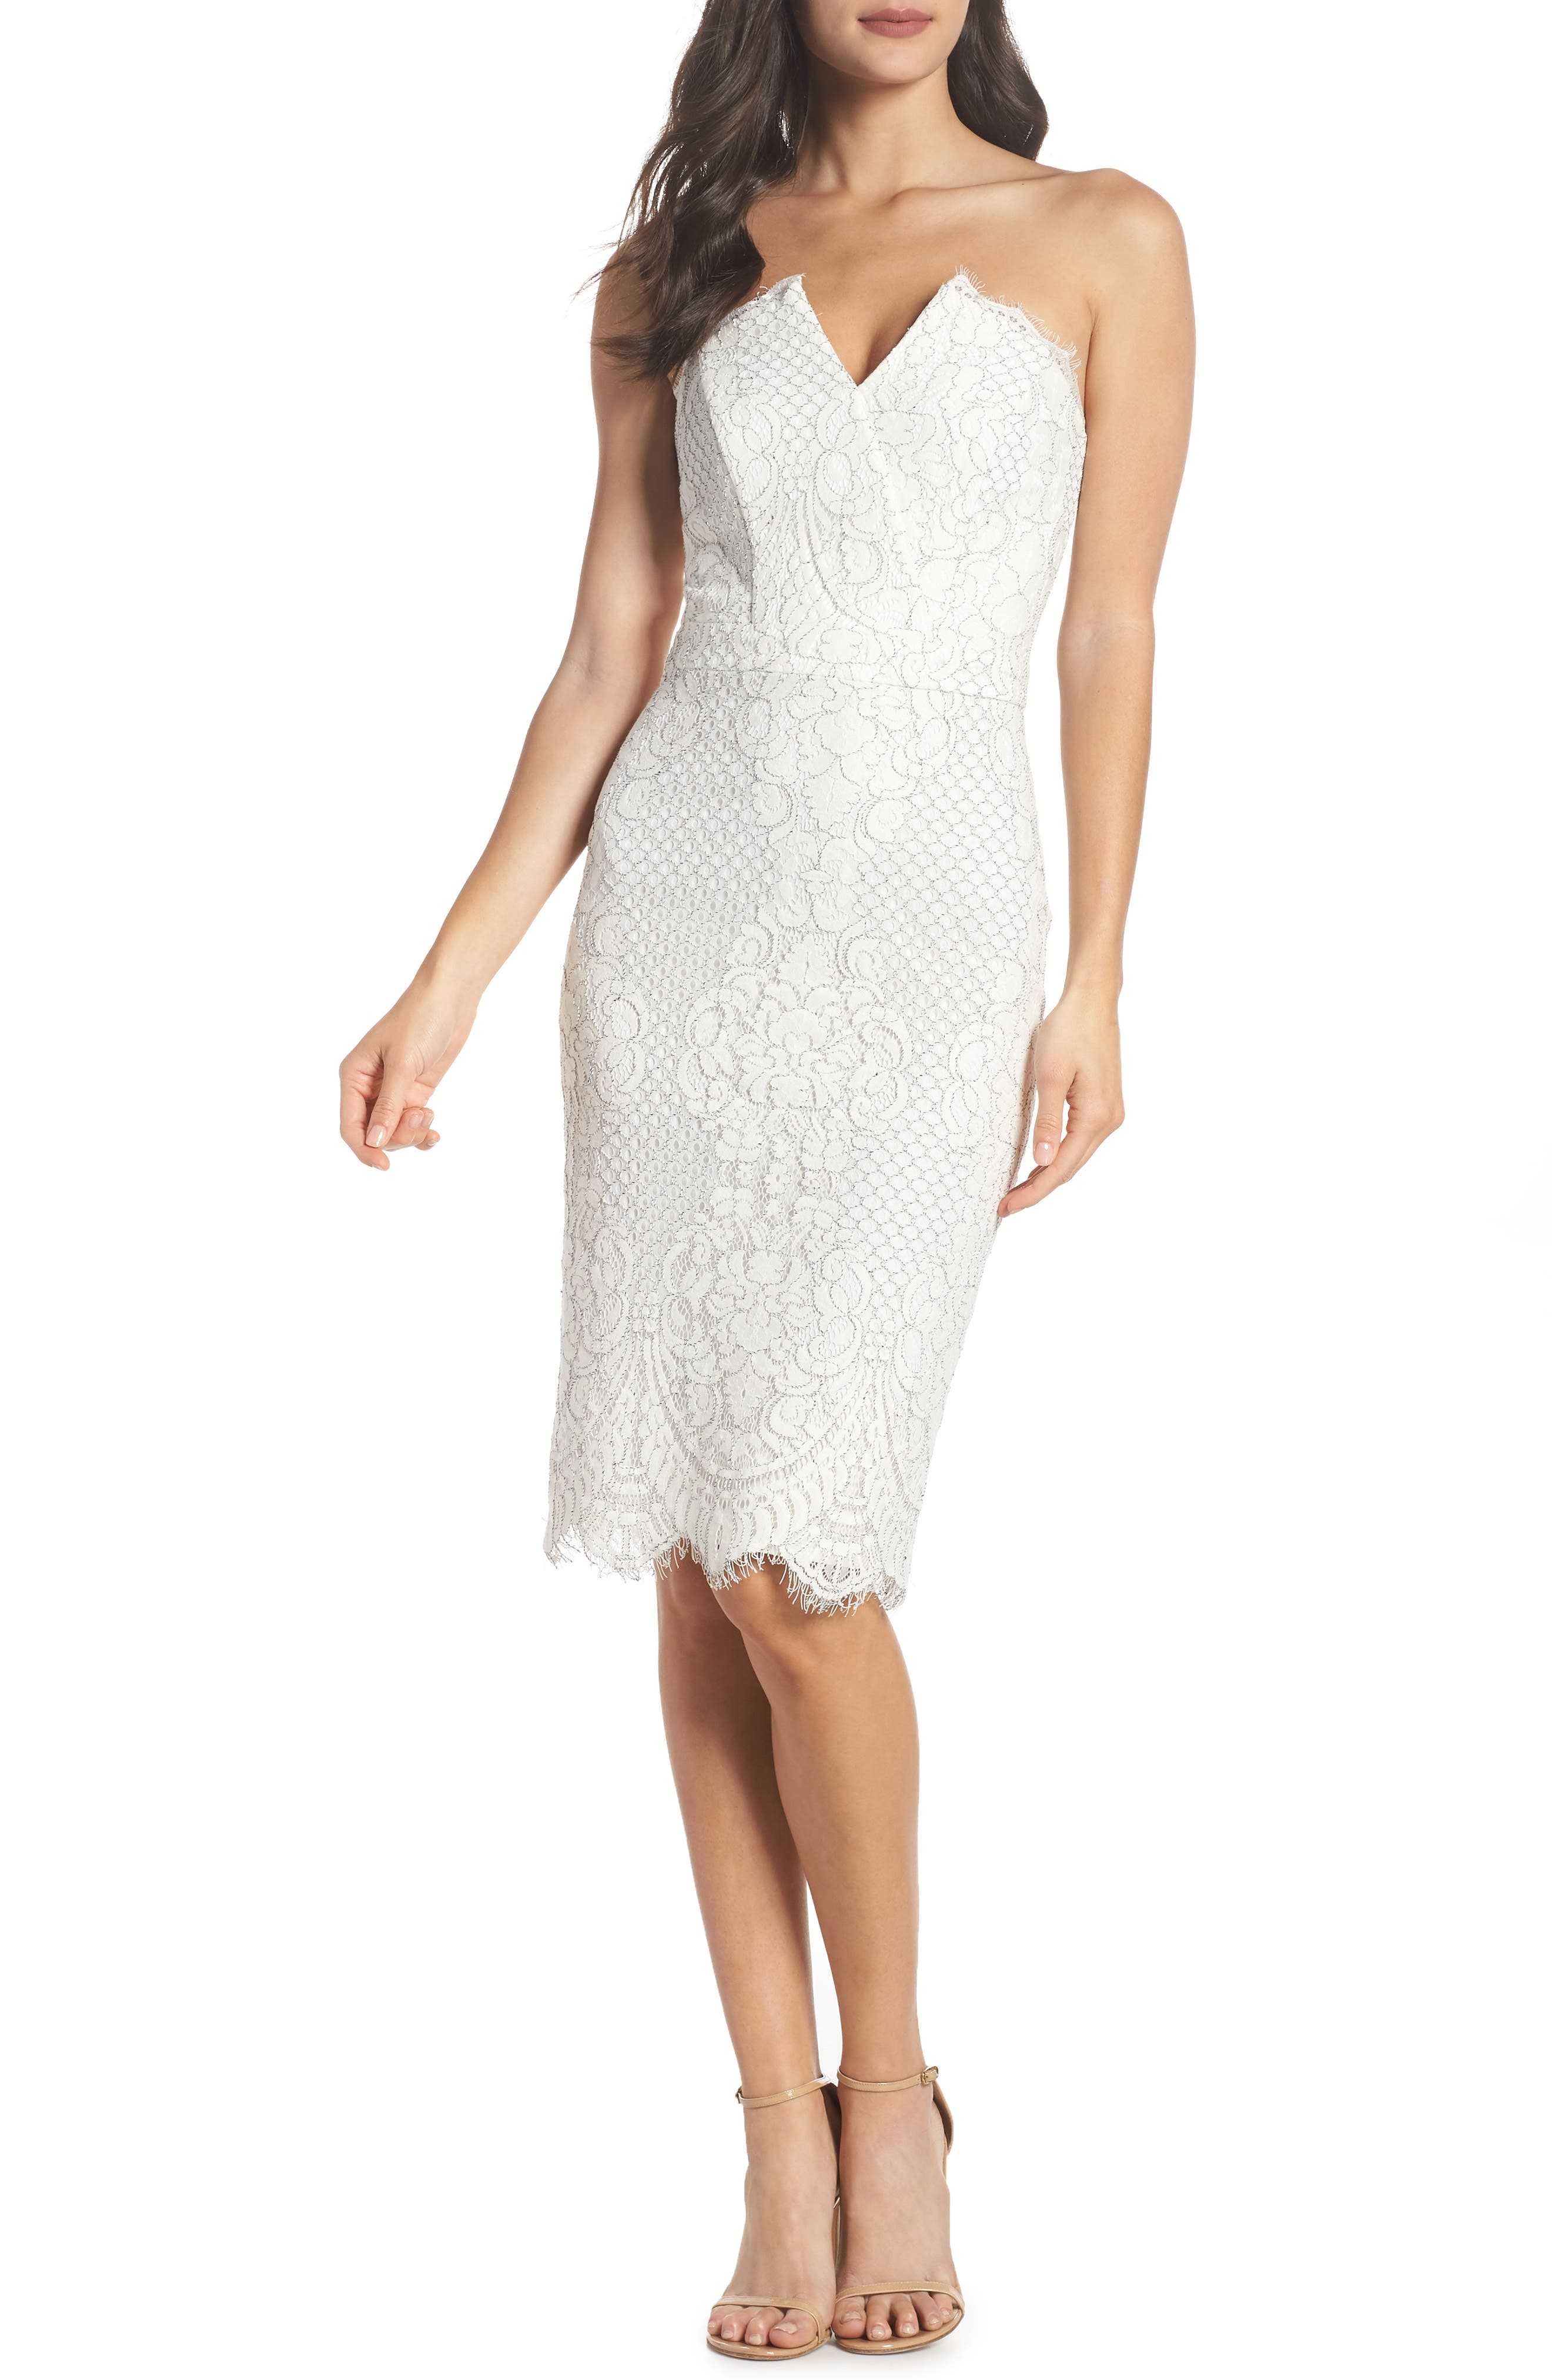 HARLYN,                             Strapless Lace Cocktail Dress,                             Main thumbnail 1, color,                             902